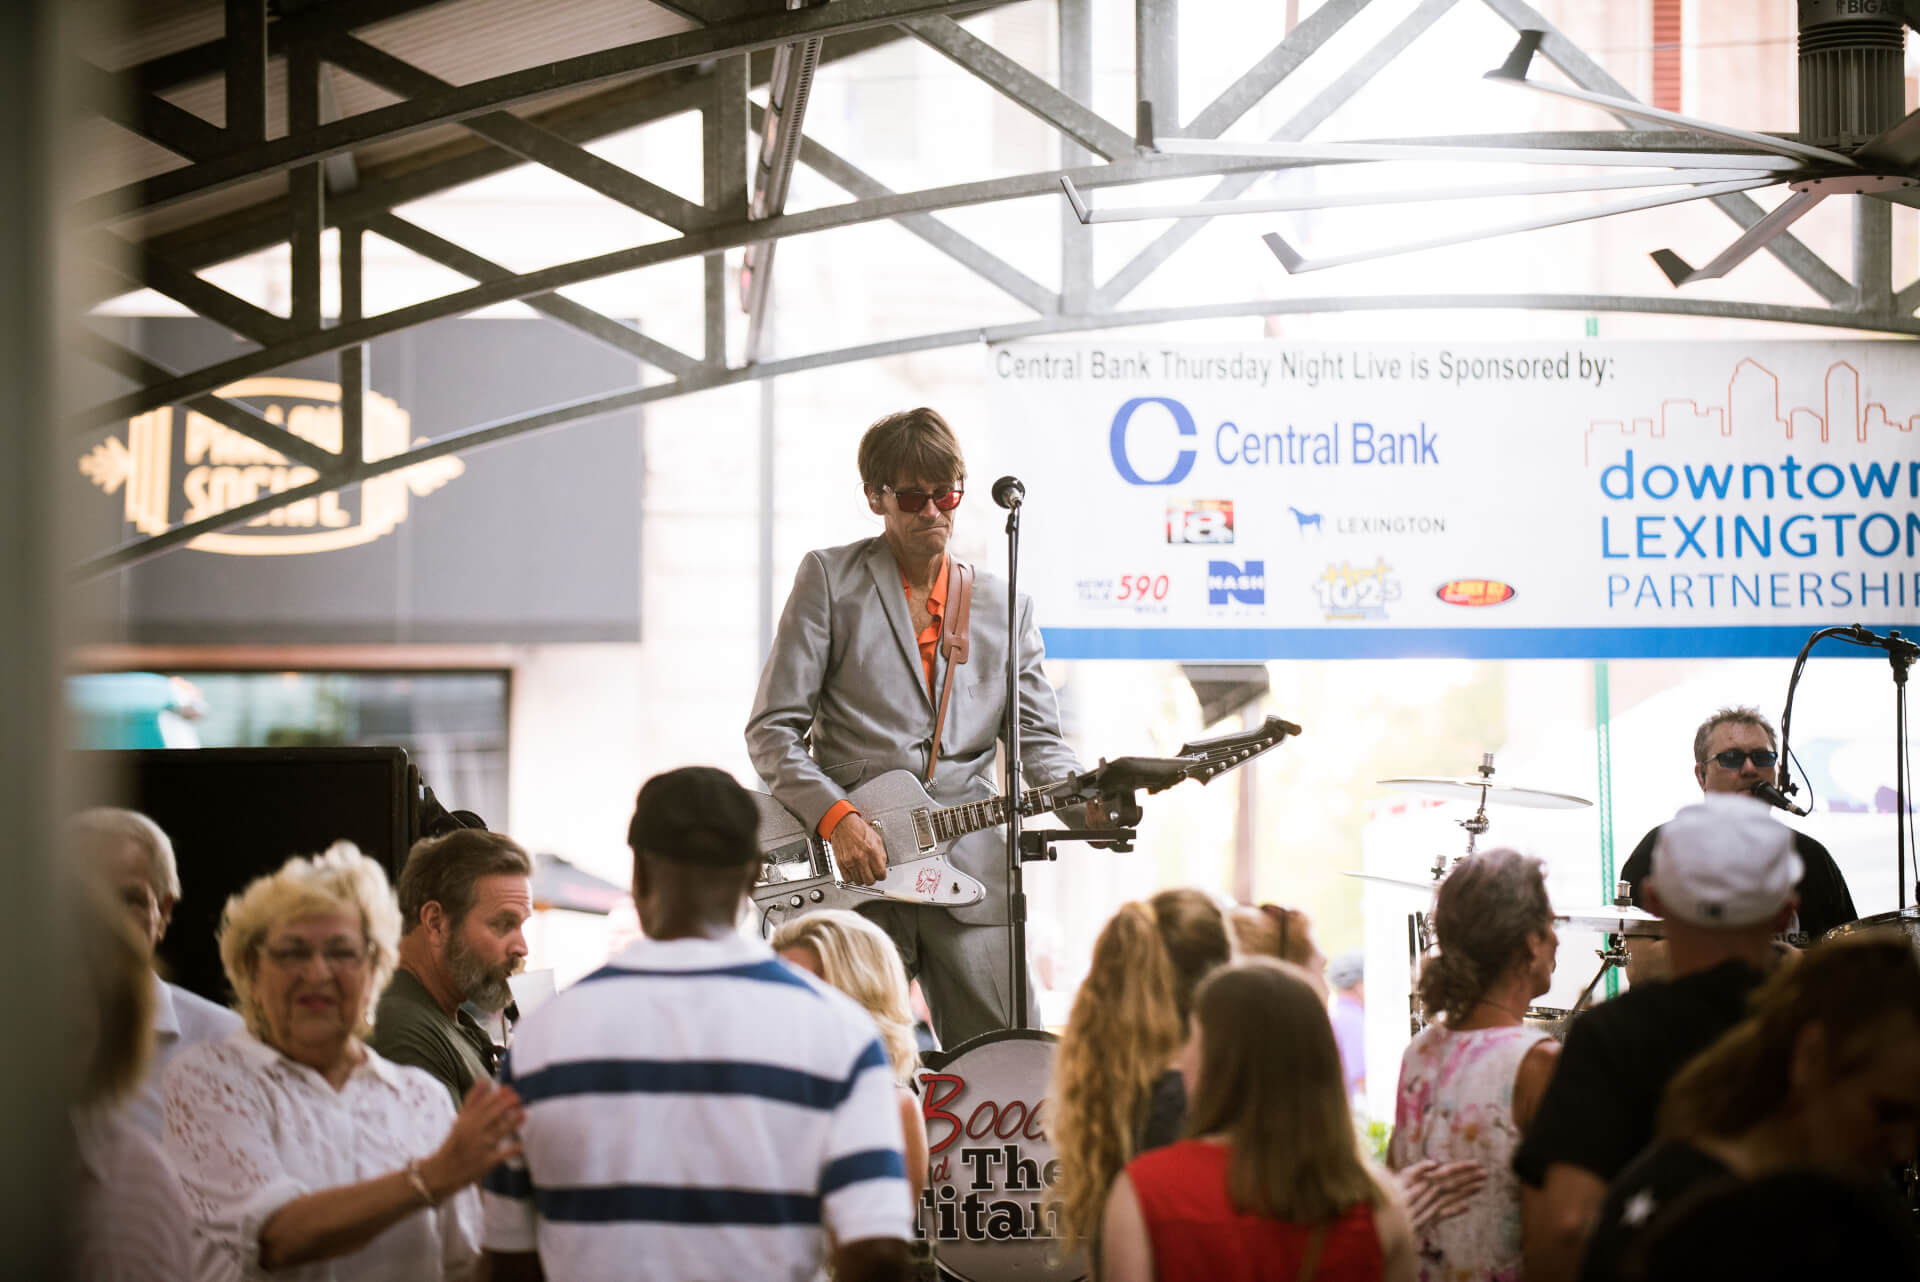 Central Bank Thursday Night Live at Fifth Third Bank Pavillion